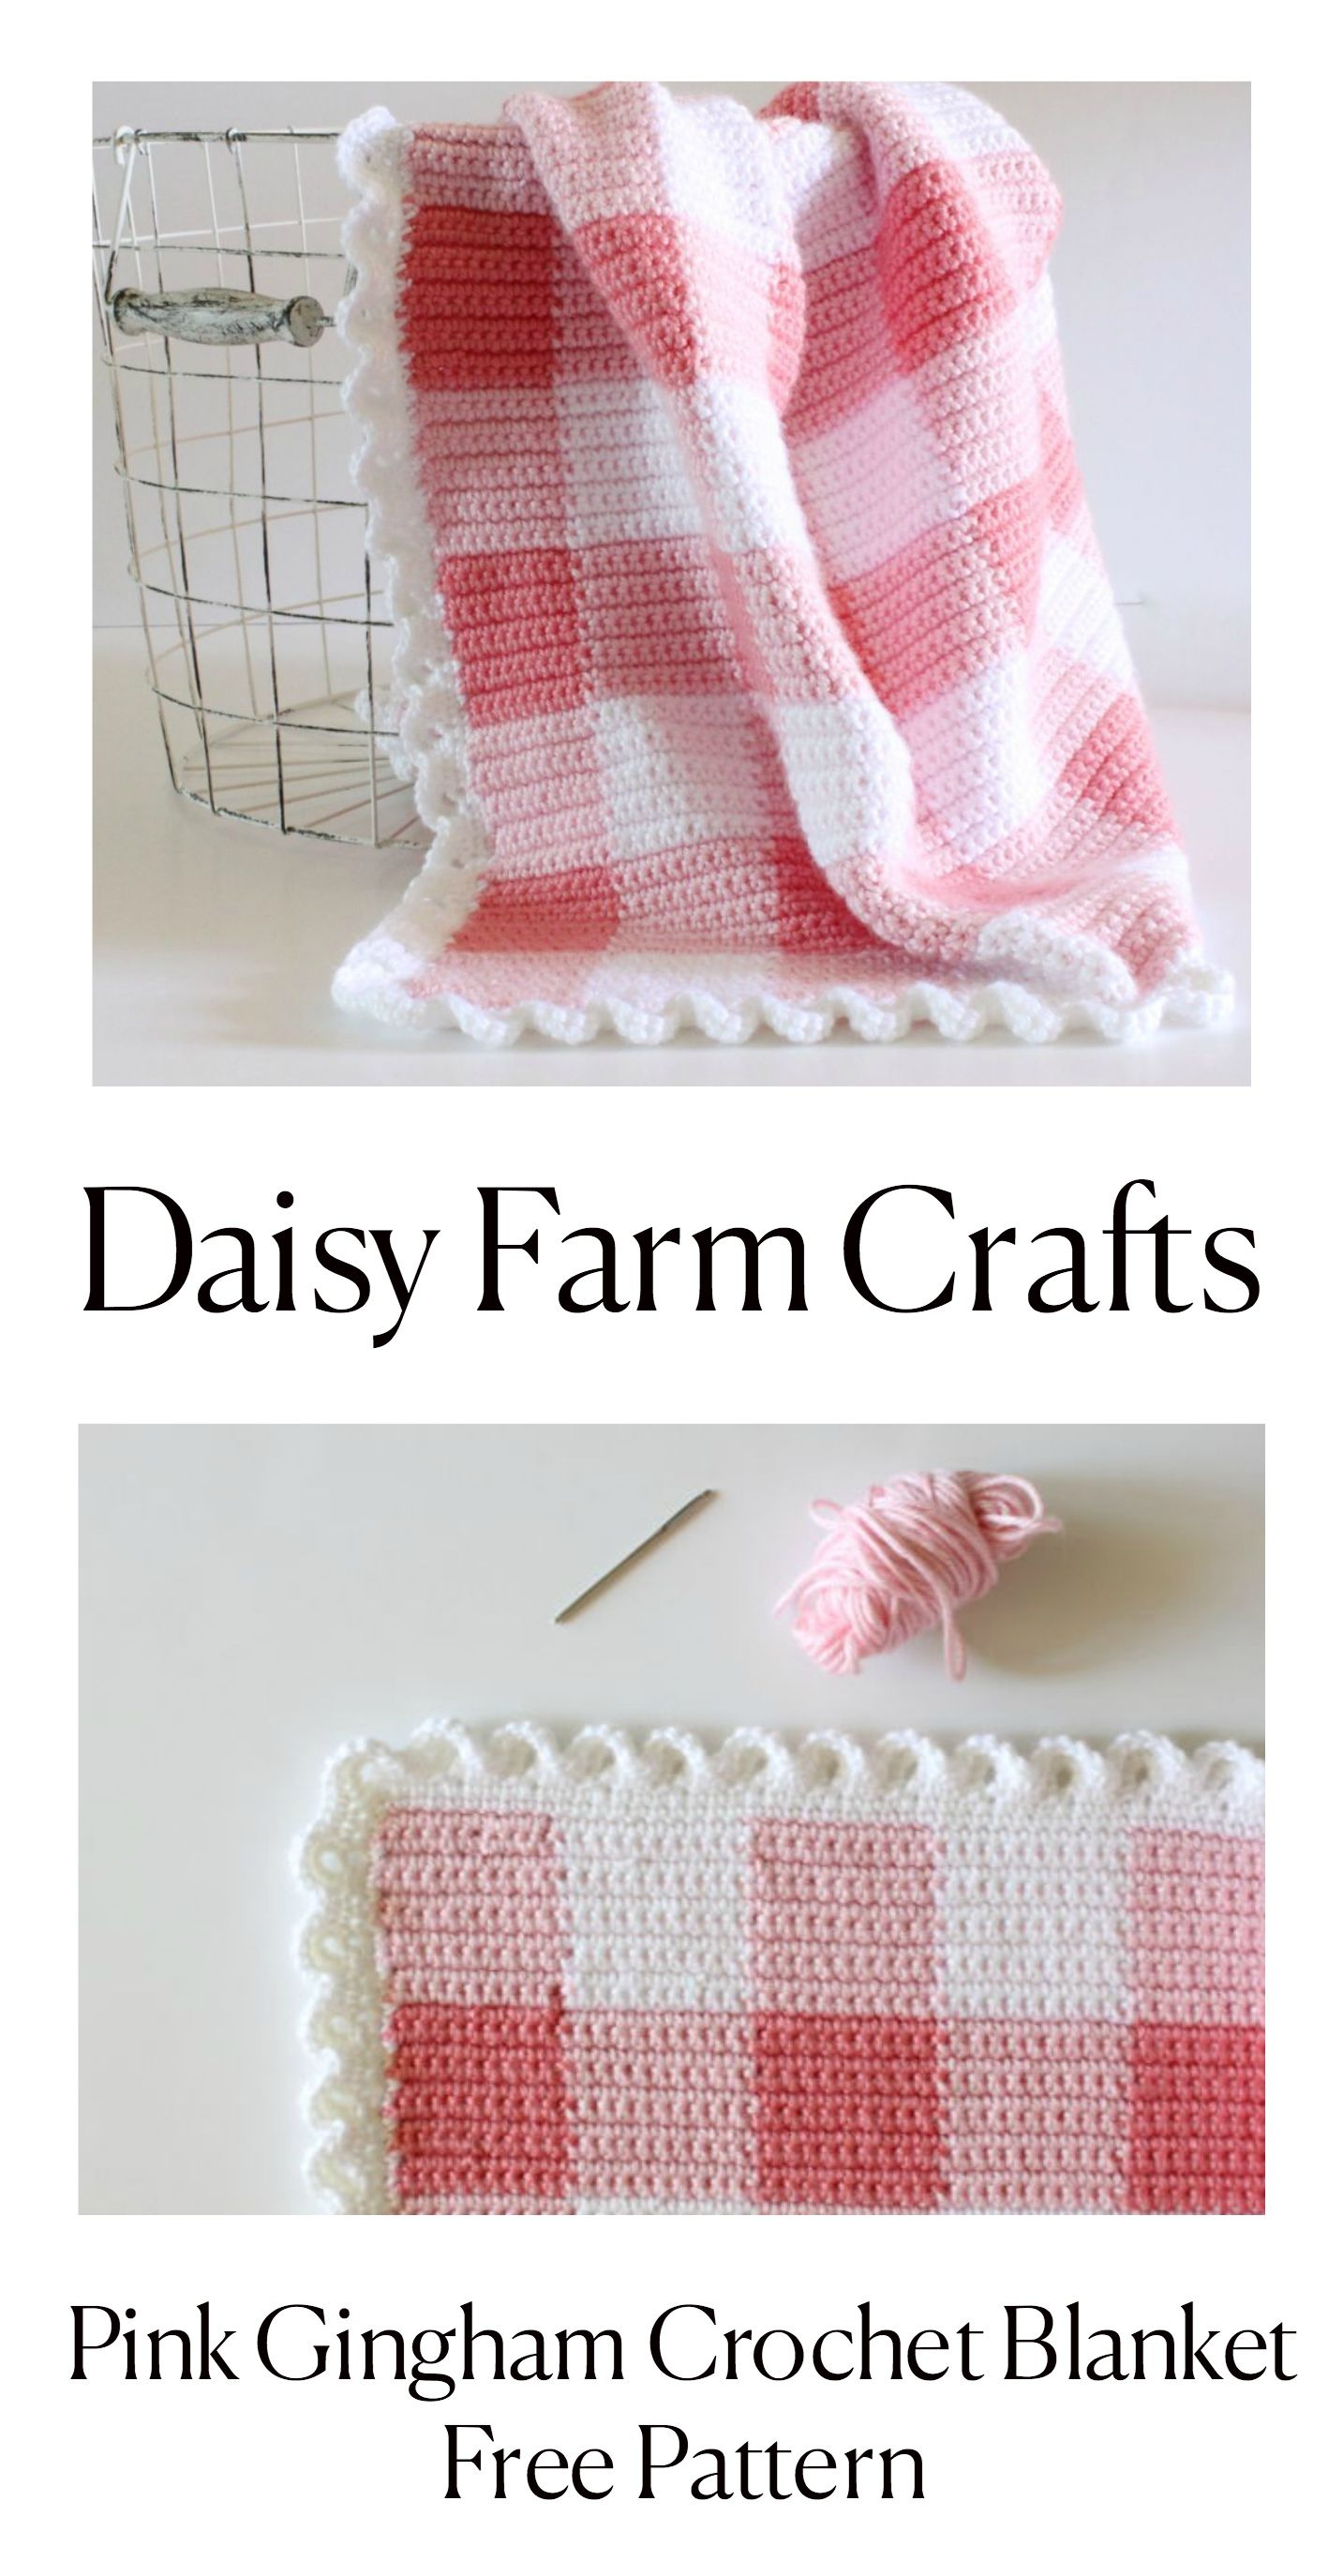 Pink Gingham Crochet Blanket - Free Pattern from Daisy Farm Crafts ...